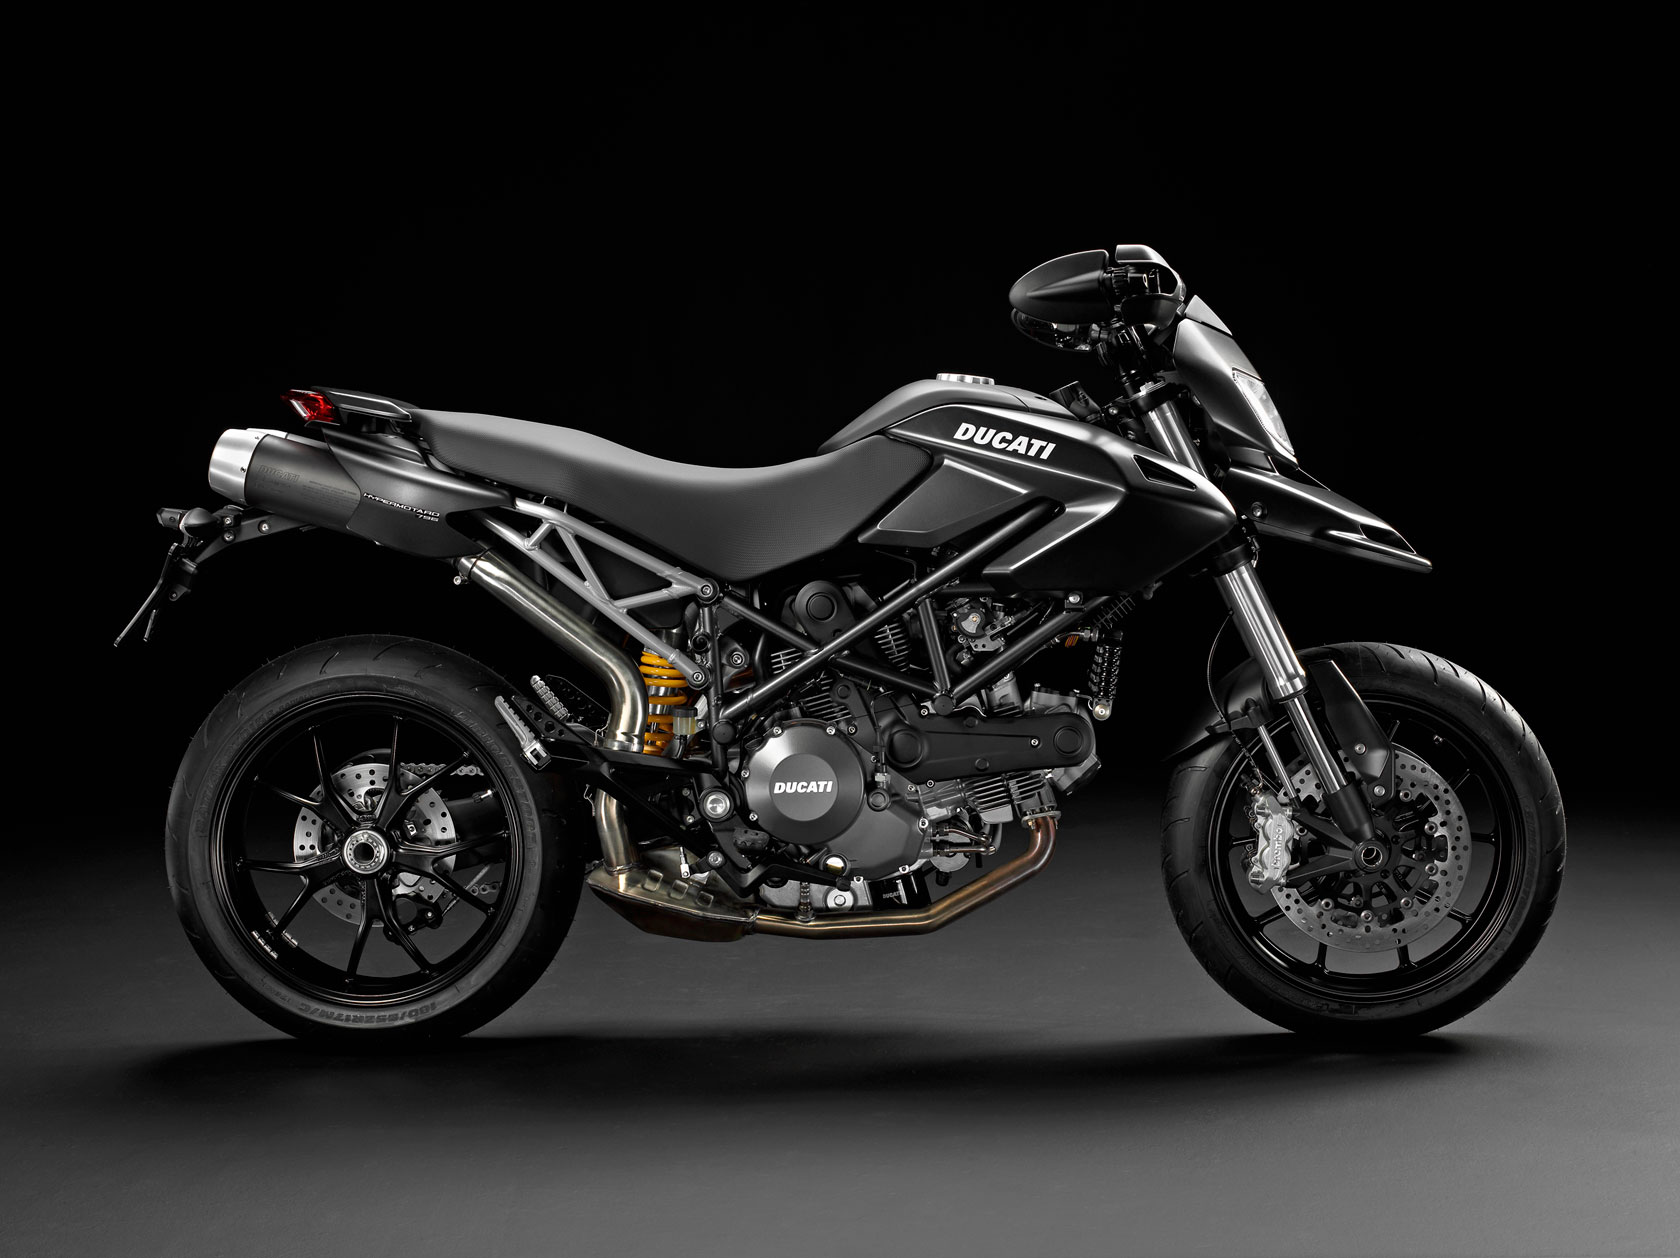 Ducati Hypermotard 796 2011 images #79576